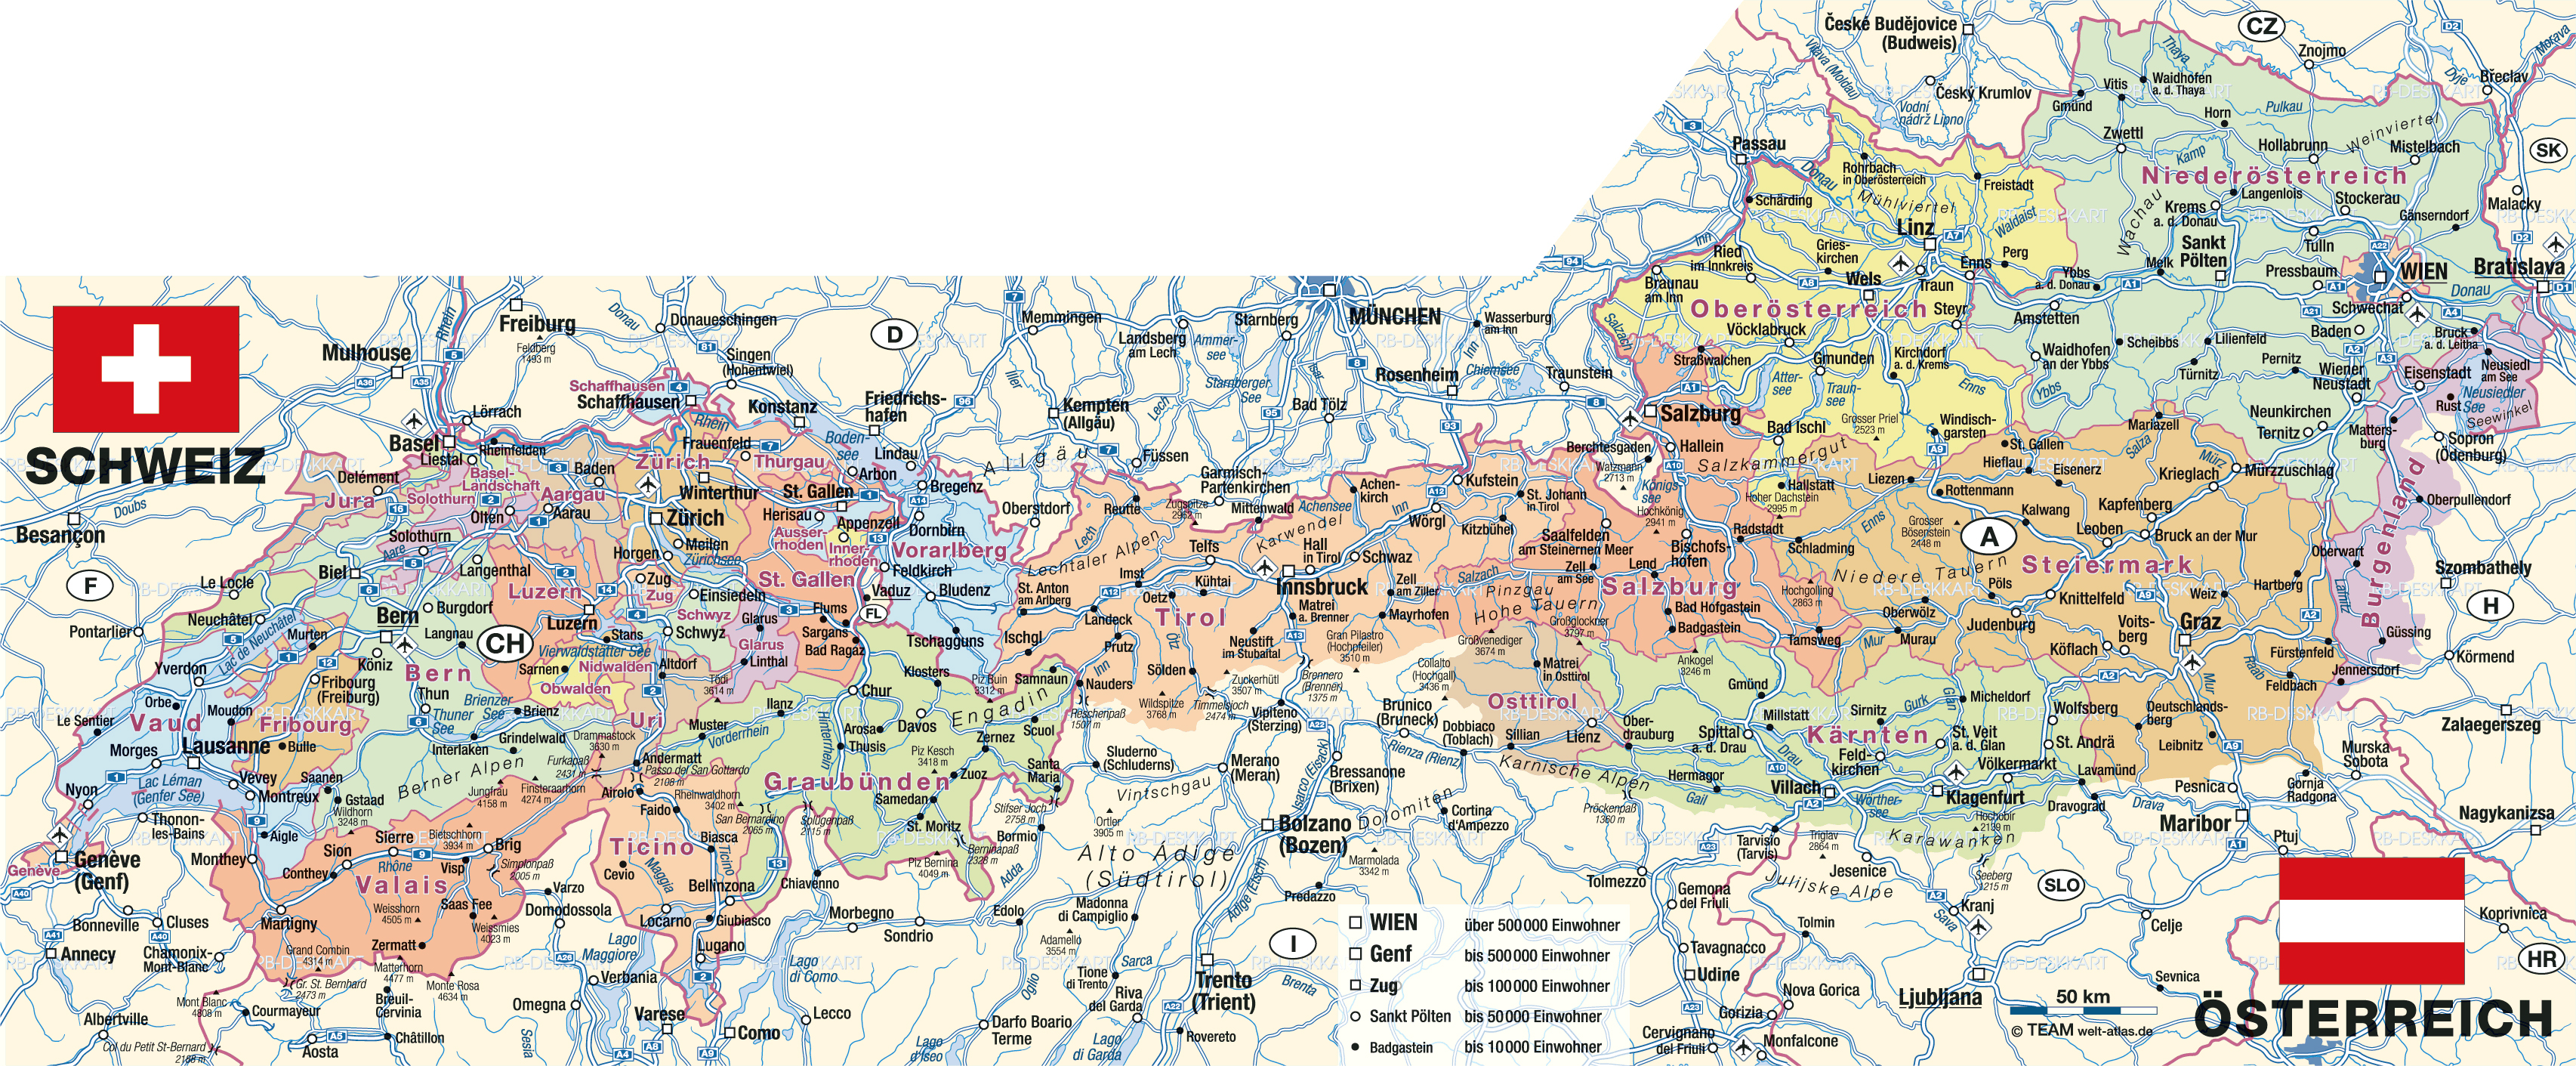 Maps Of Austria Map Library Maps Of The World - Austria political map